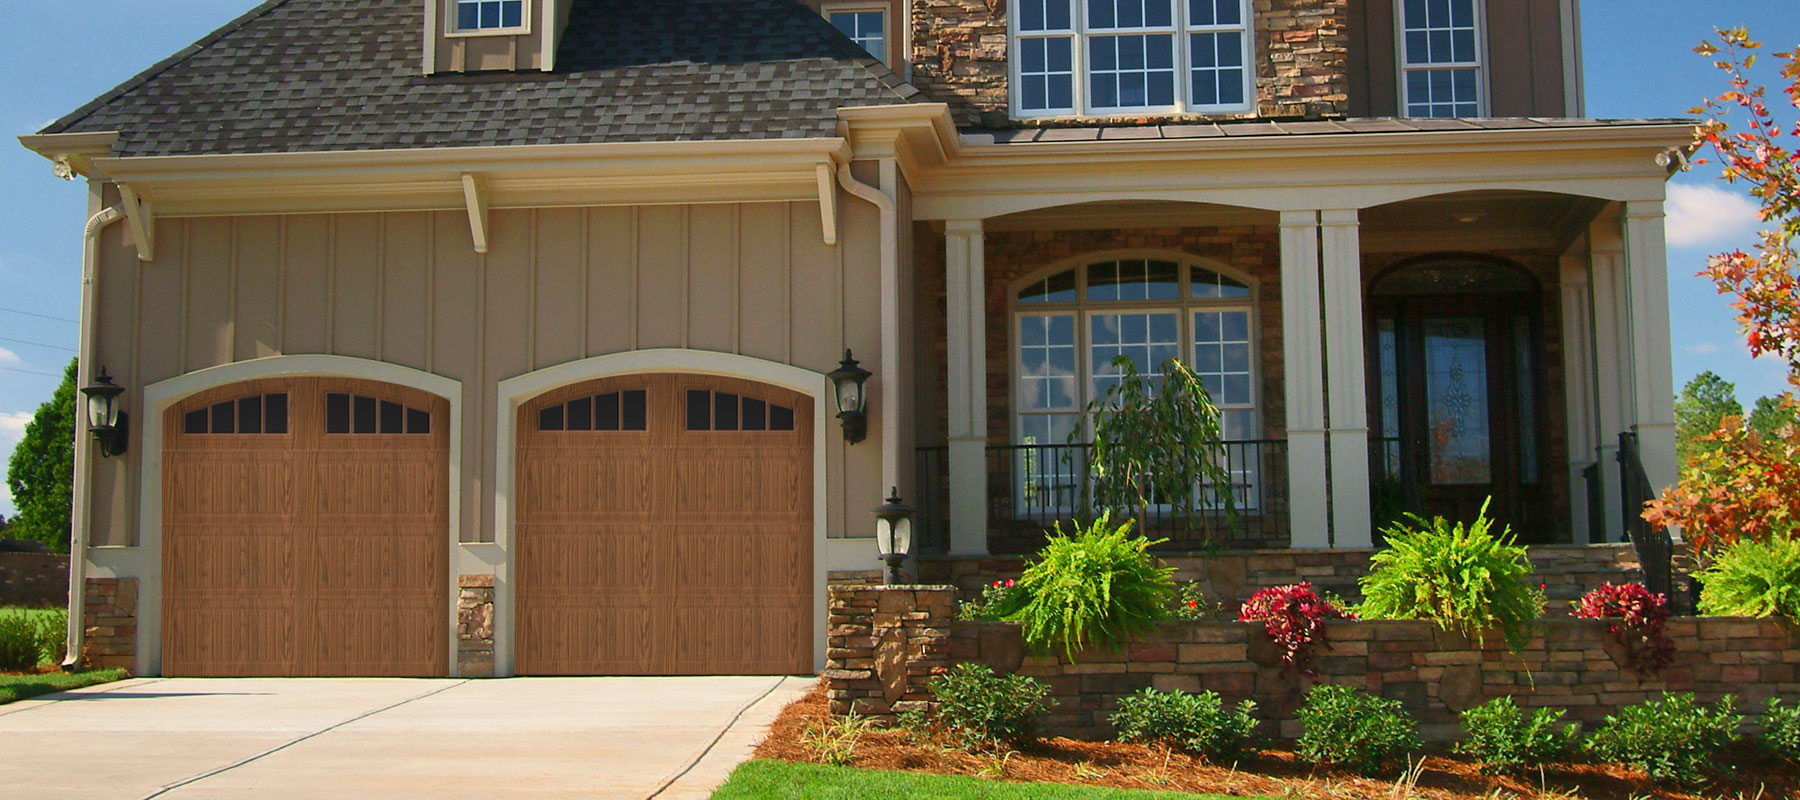 3640 Grooved Panel Garage Door